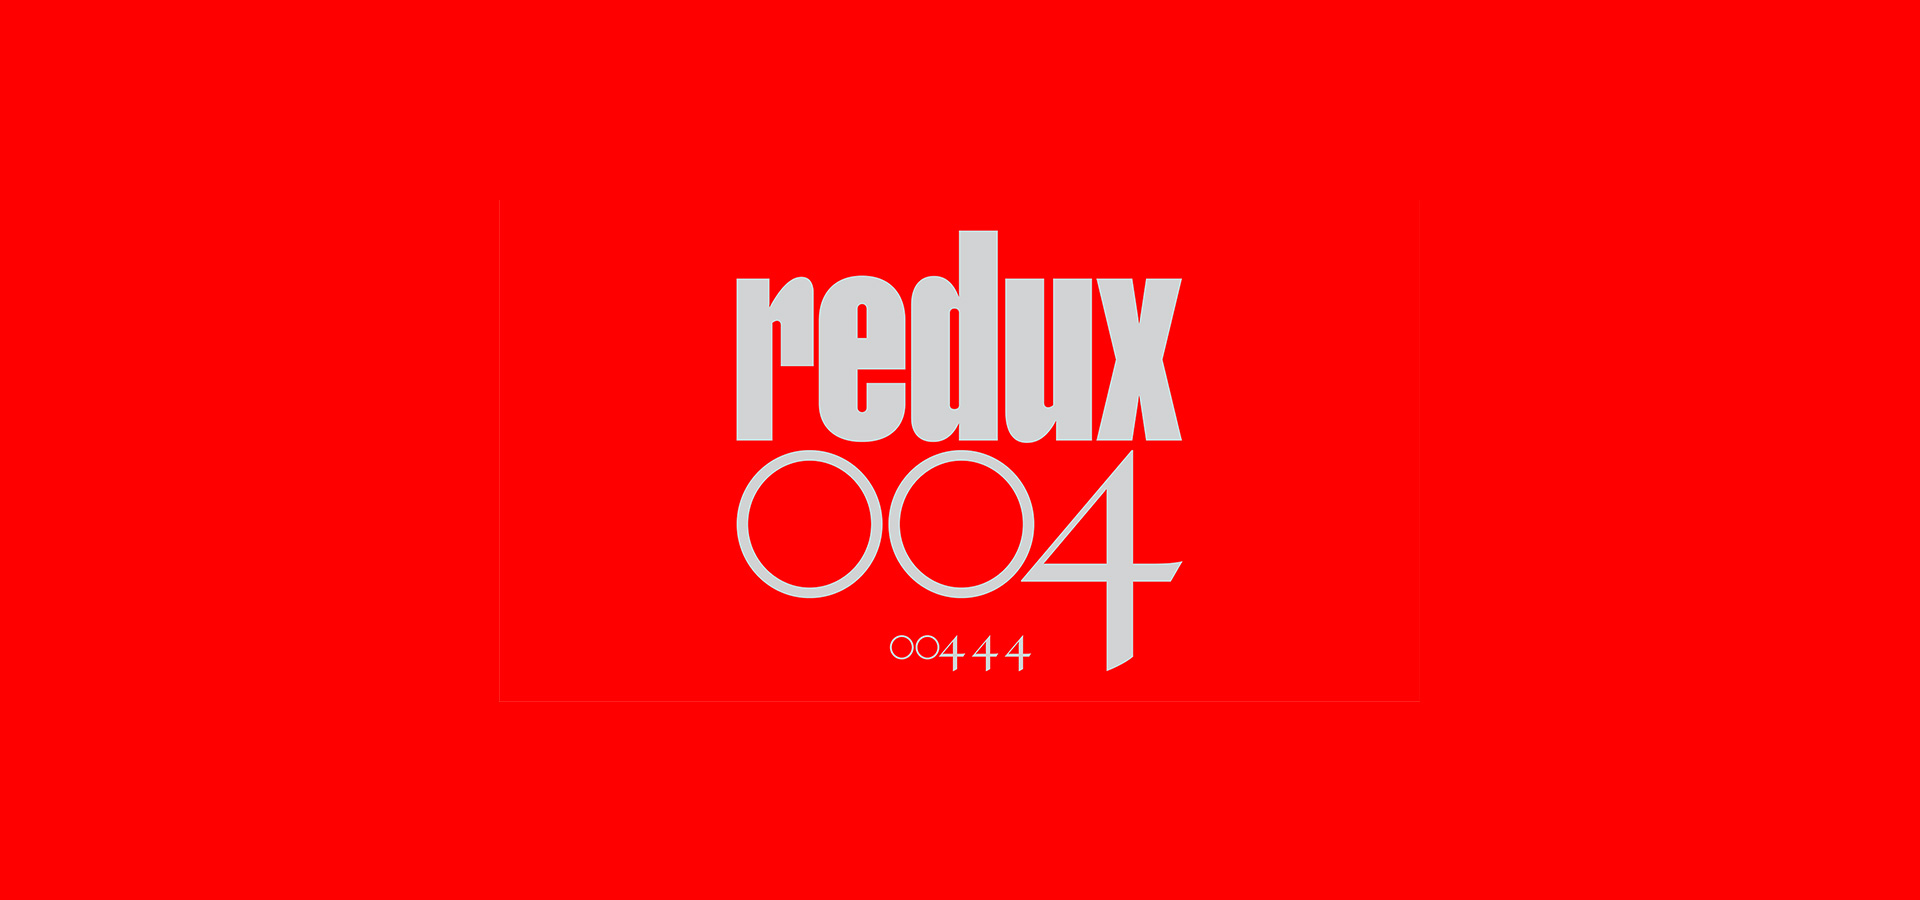 REDUX 004 Artwork